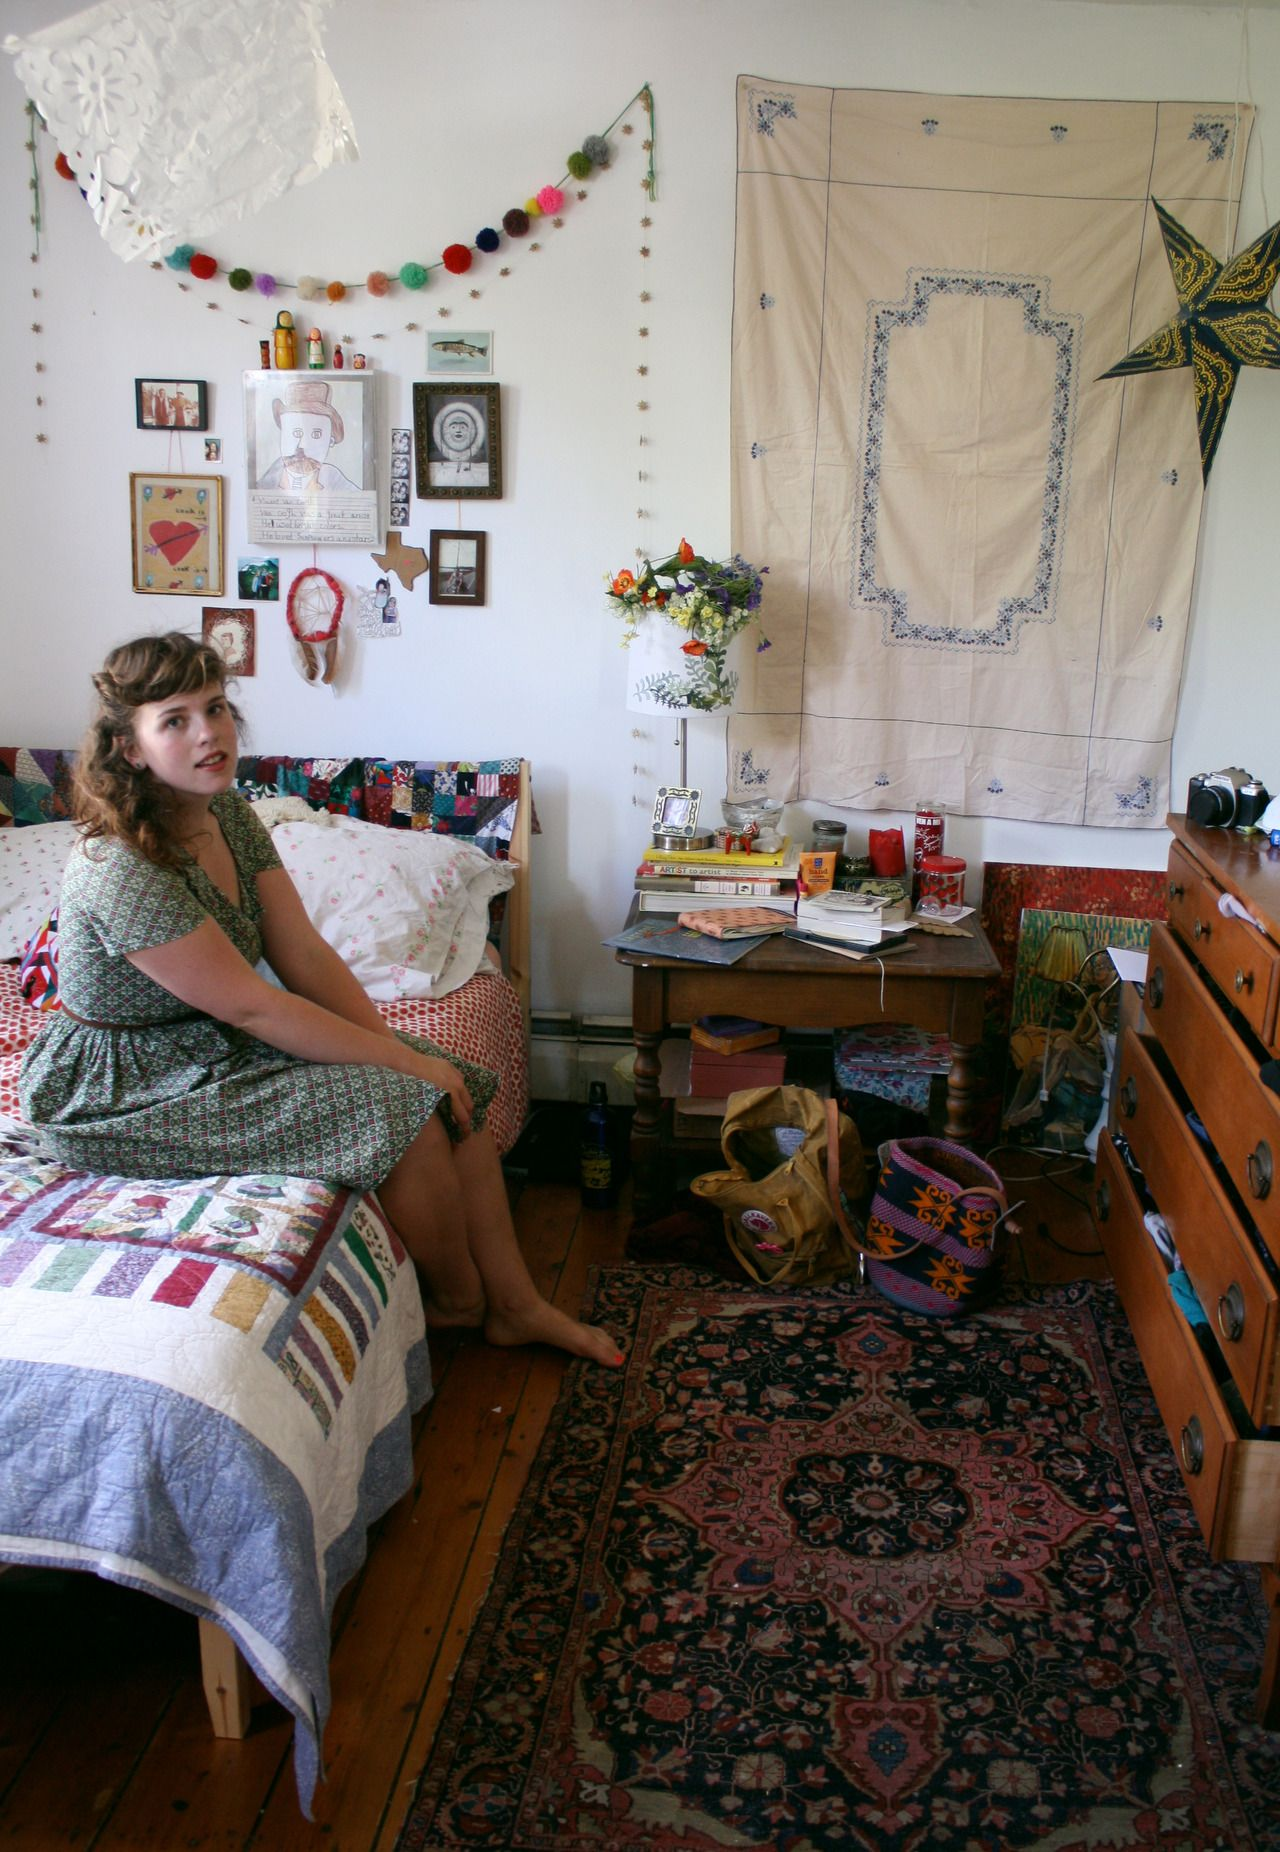 Phoebebird This Is Me In My New Room Lovely Room For Inspiration Beauteous Design My Bedroom For Me Design Ideas